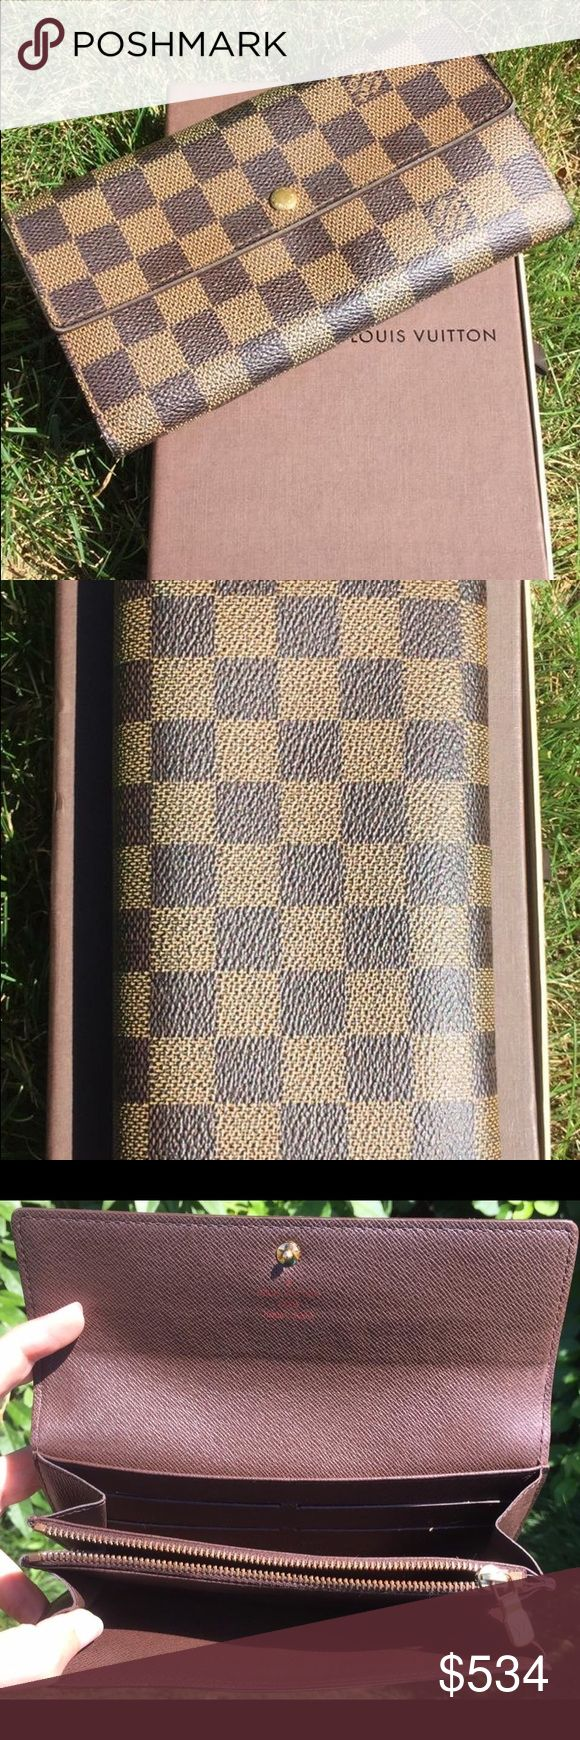 Louis Vuitton Damier Wallet 100% AUTHENTIC - In great condition - box included - Price firm no trades - buy for less & more pics at www.chicboutiqueconsignments.com! MA's #1 designer consignment boutique! Louis Vuitton Bags Wallets